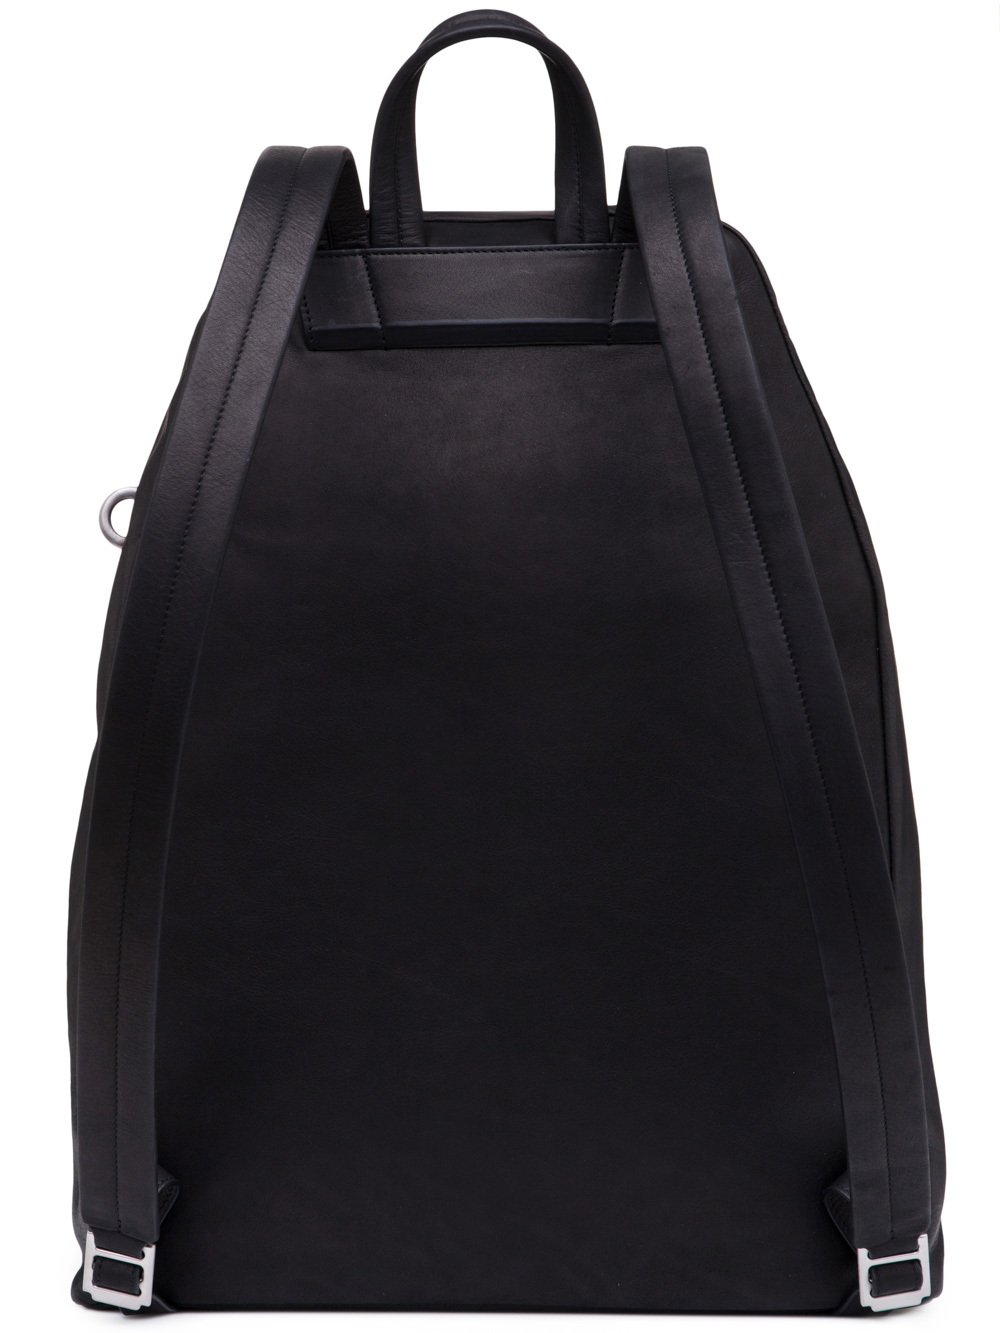 RICK OWENS BACKPACK IN BLACK CALF LEATHER